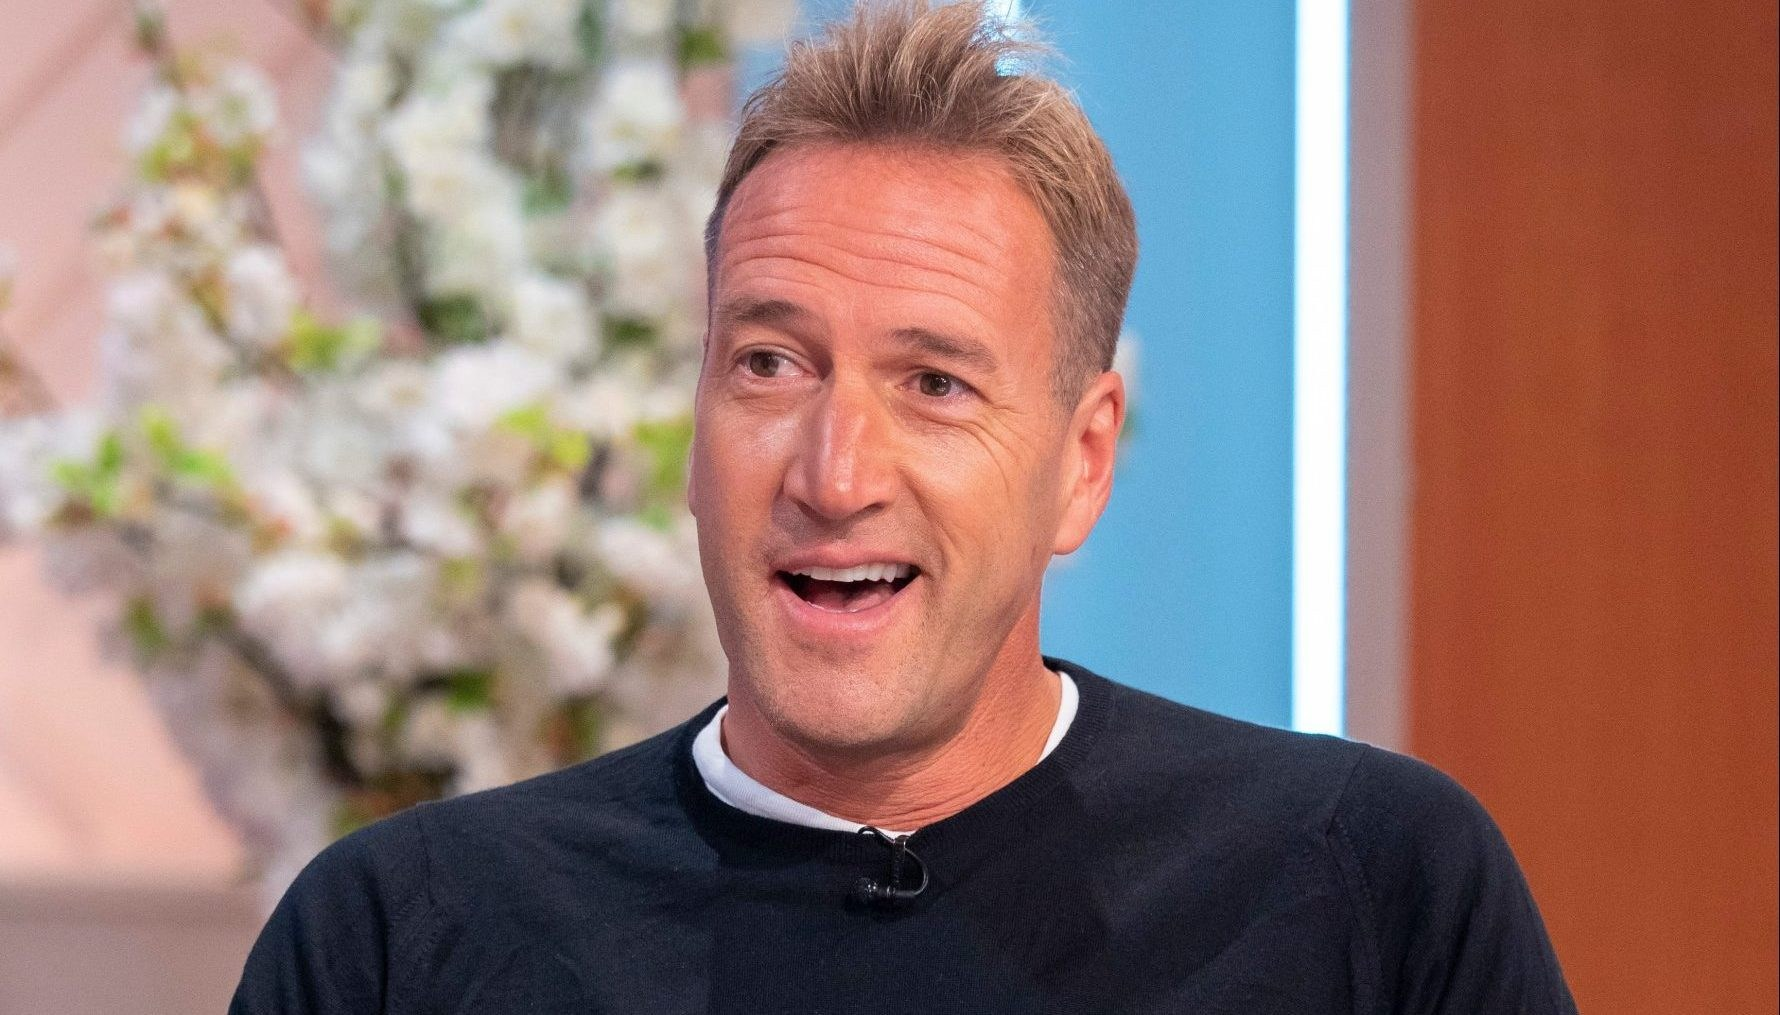 Ben Fogle recalls 'psychotic episode' after his drink was spiked: 'One of the scariest experiences'